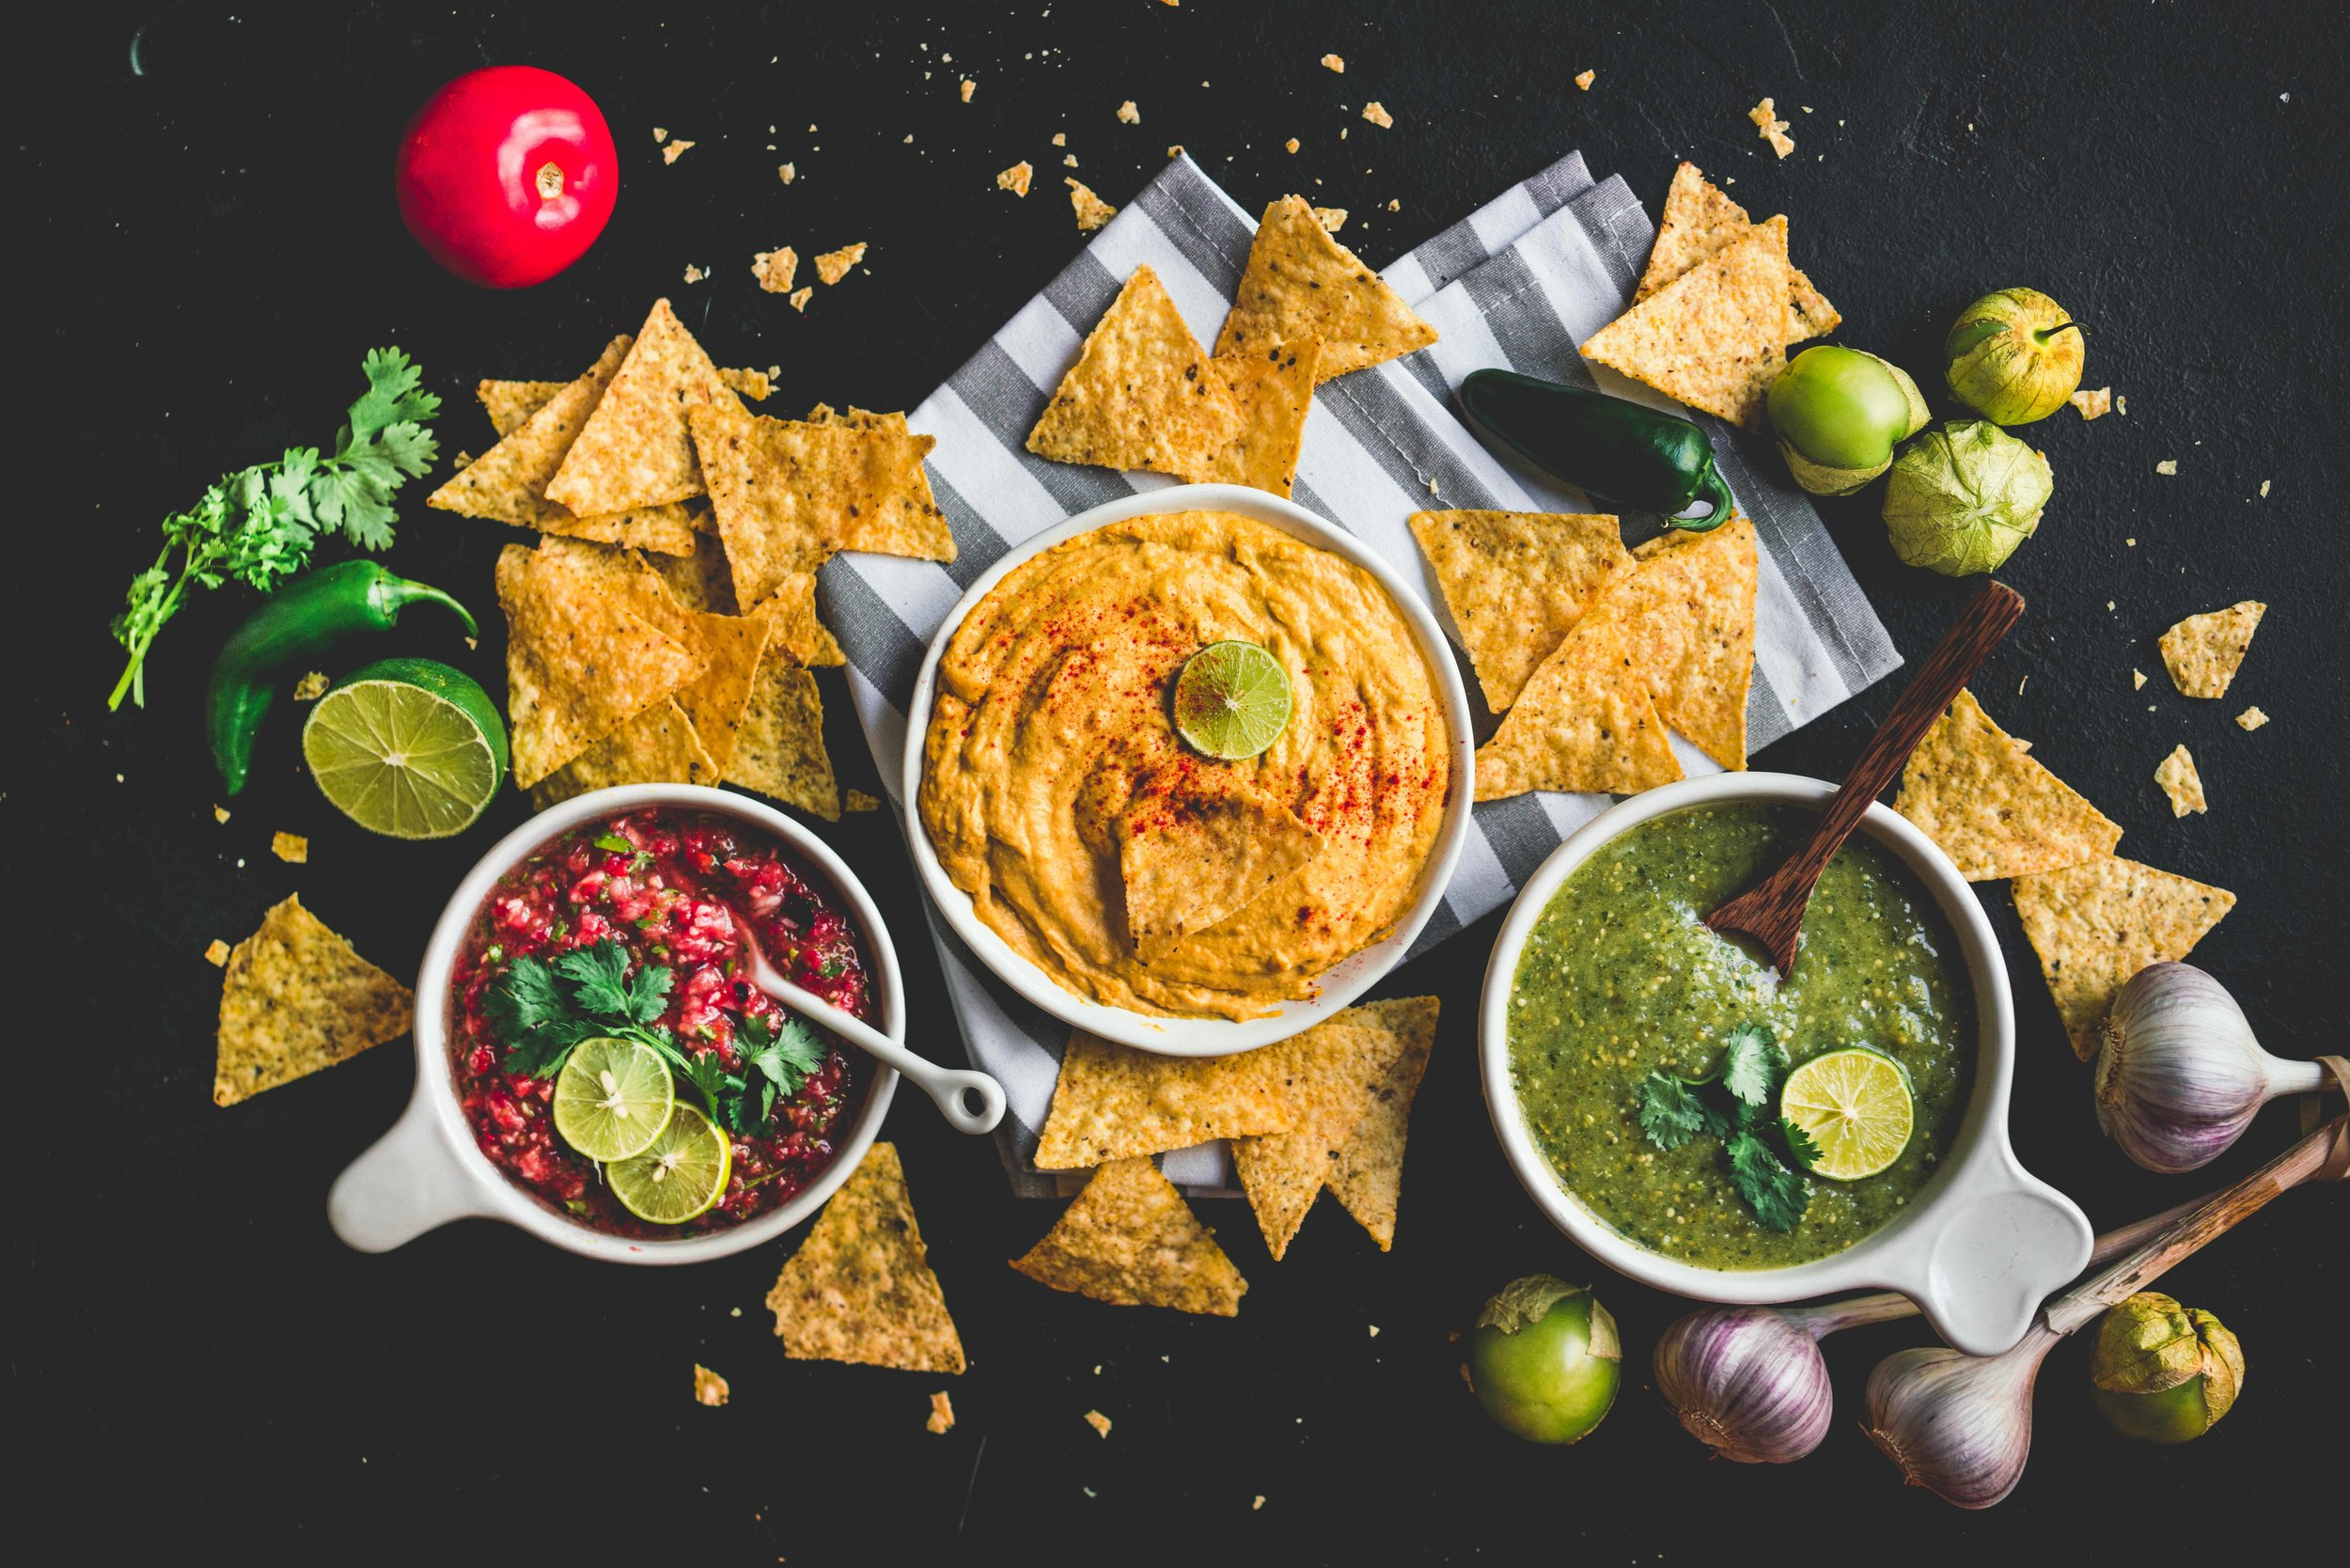 From left to right : classic salsa, cashew queso dip and salsa verde.